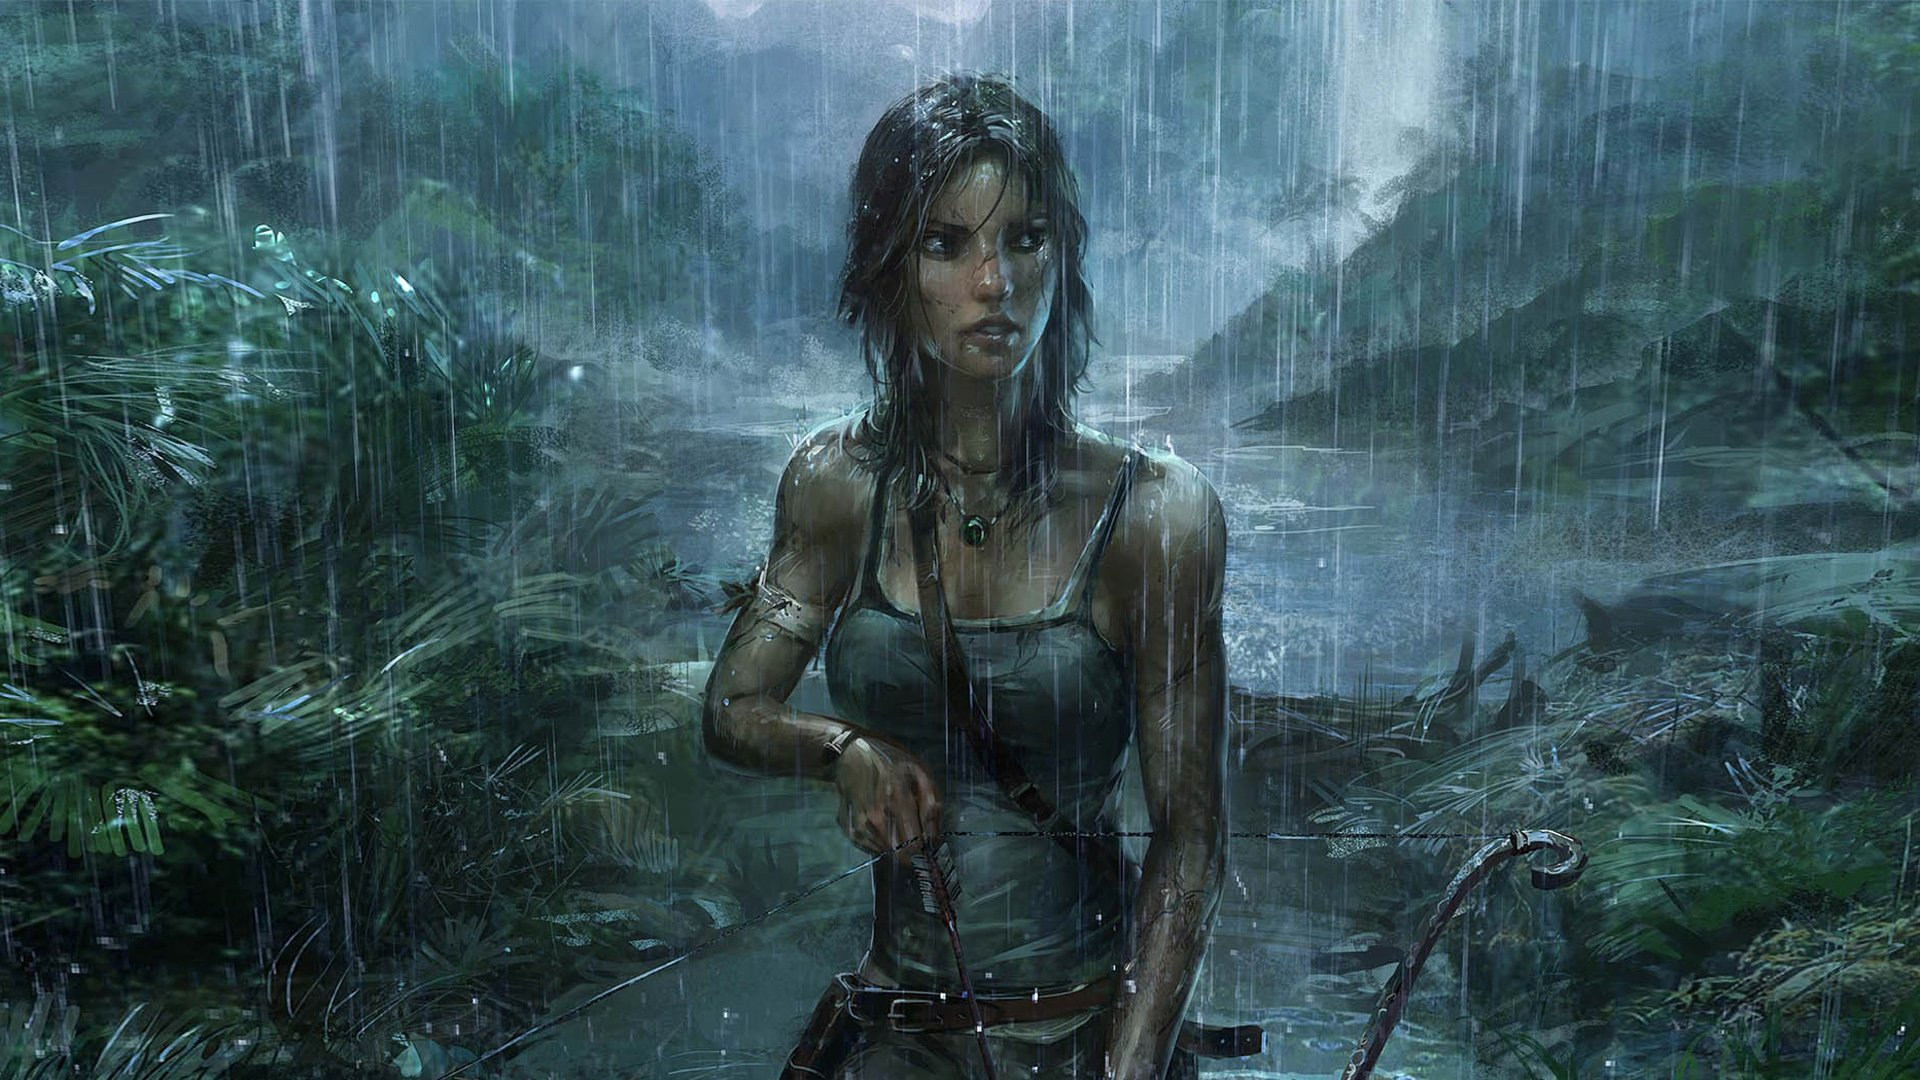 Desktop Wallpapers - Tomb Raider, Fan art - Games | Free Desktop Backgrounds 1920x1080